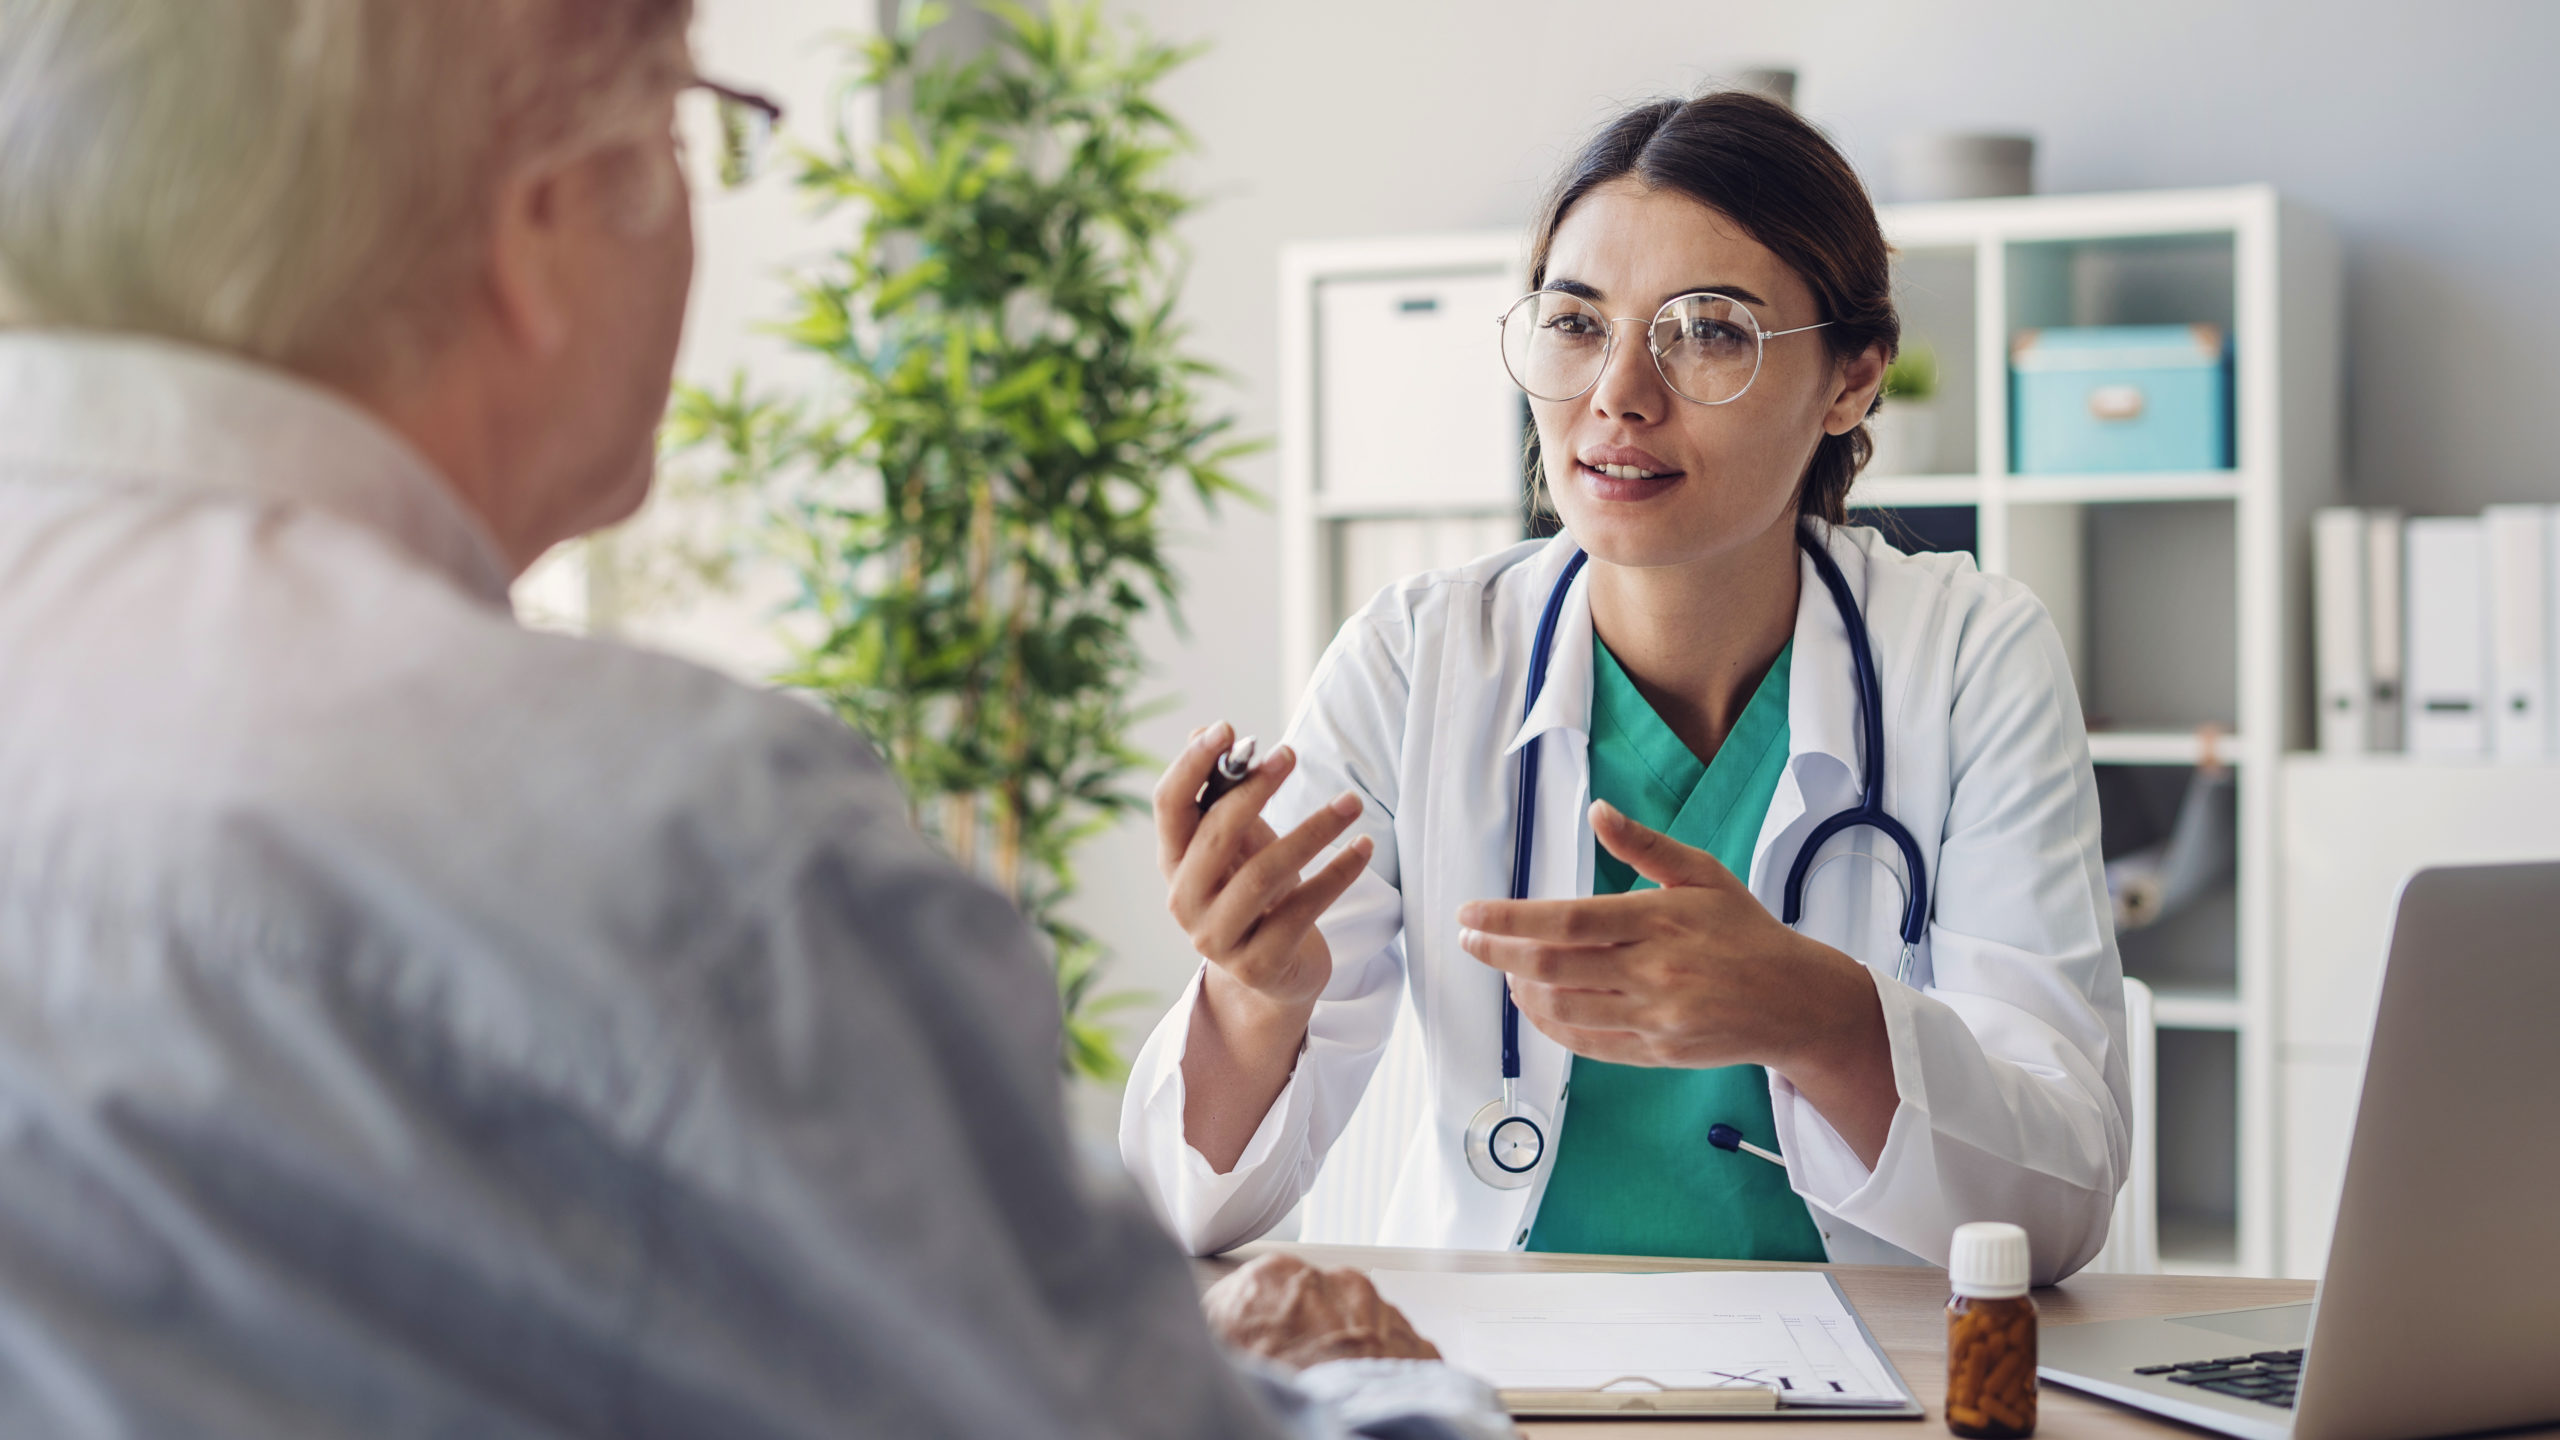 7 communication strategies to address gaps in care